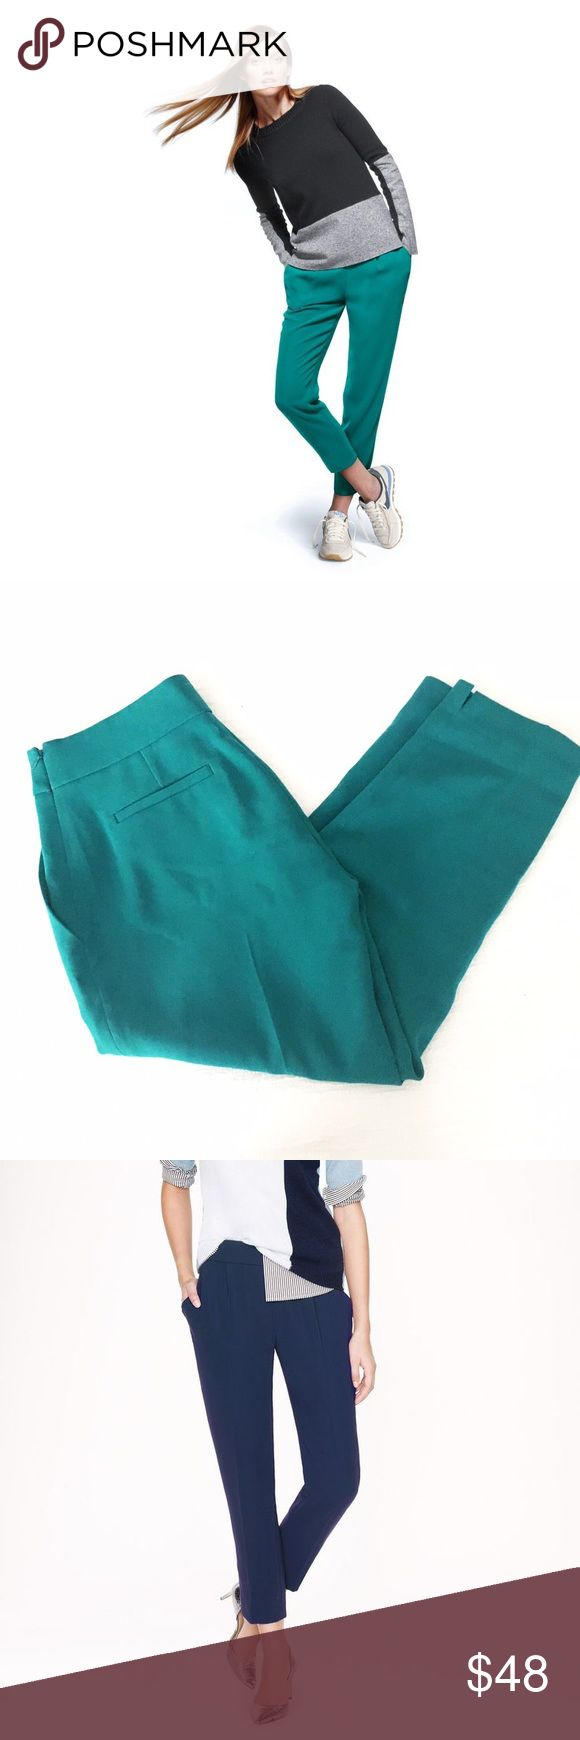 """j.crew collection curator pant Fluidly designed with an easy, draped silhouette, it's a great alternative to the standard work trouser. Poly, side zip, off seam pockets, notches at cuffs, machine wash. Very gently worn condition, only flaw to note is some mild piling on the left front pocket. Laid flat measures, 14.75"""" across the waist, 20"""" across the fullest part of the hip, 10"""" rise, 24"""" inseam. A great pair of pants for us hippier ladies. Runs large, fits closer to a size 4 IMO. J. Crew…"""